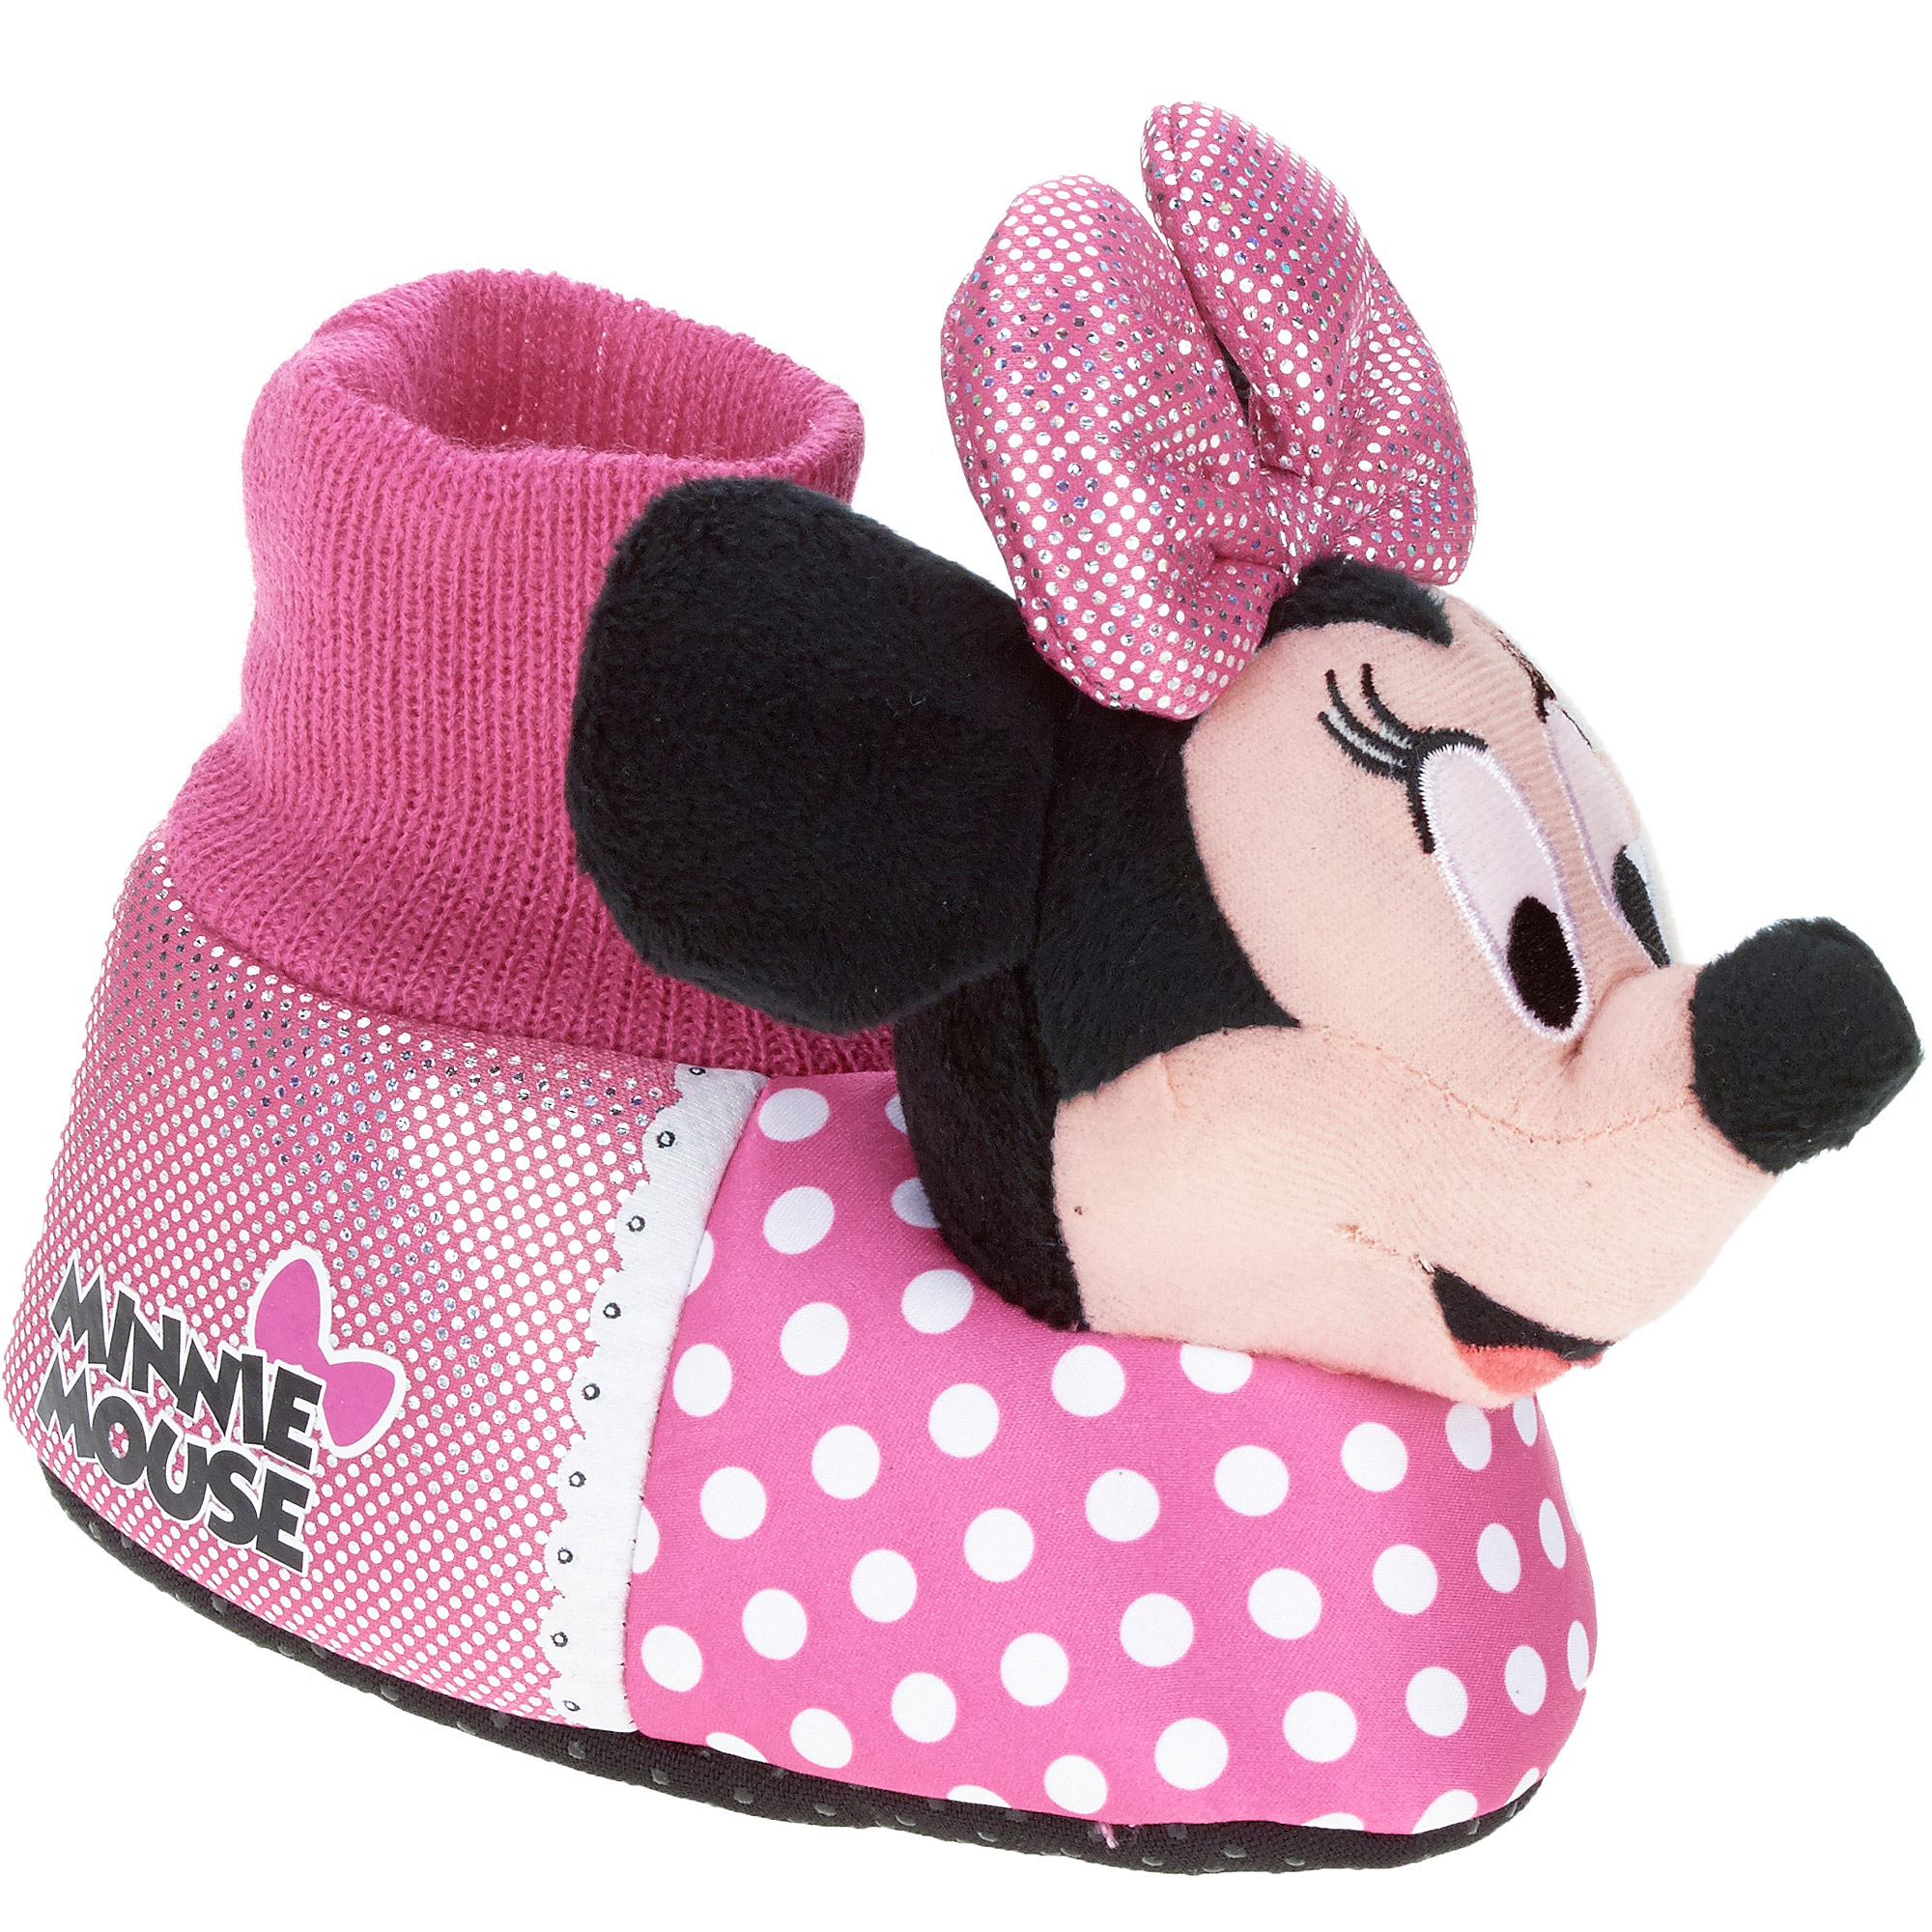 The toddler girls' pink Minnie Mouse socktop slipper features Minnie Mouse all dressed up in her best pink and white polka-dot dress with her oversized iconic matching hair bow. The stretchy comfortable socktop is crafted in coordinating pink, and Minnie is her usual smiling and happy self.